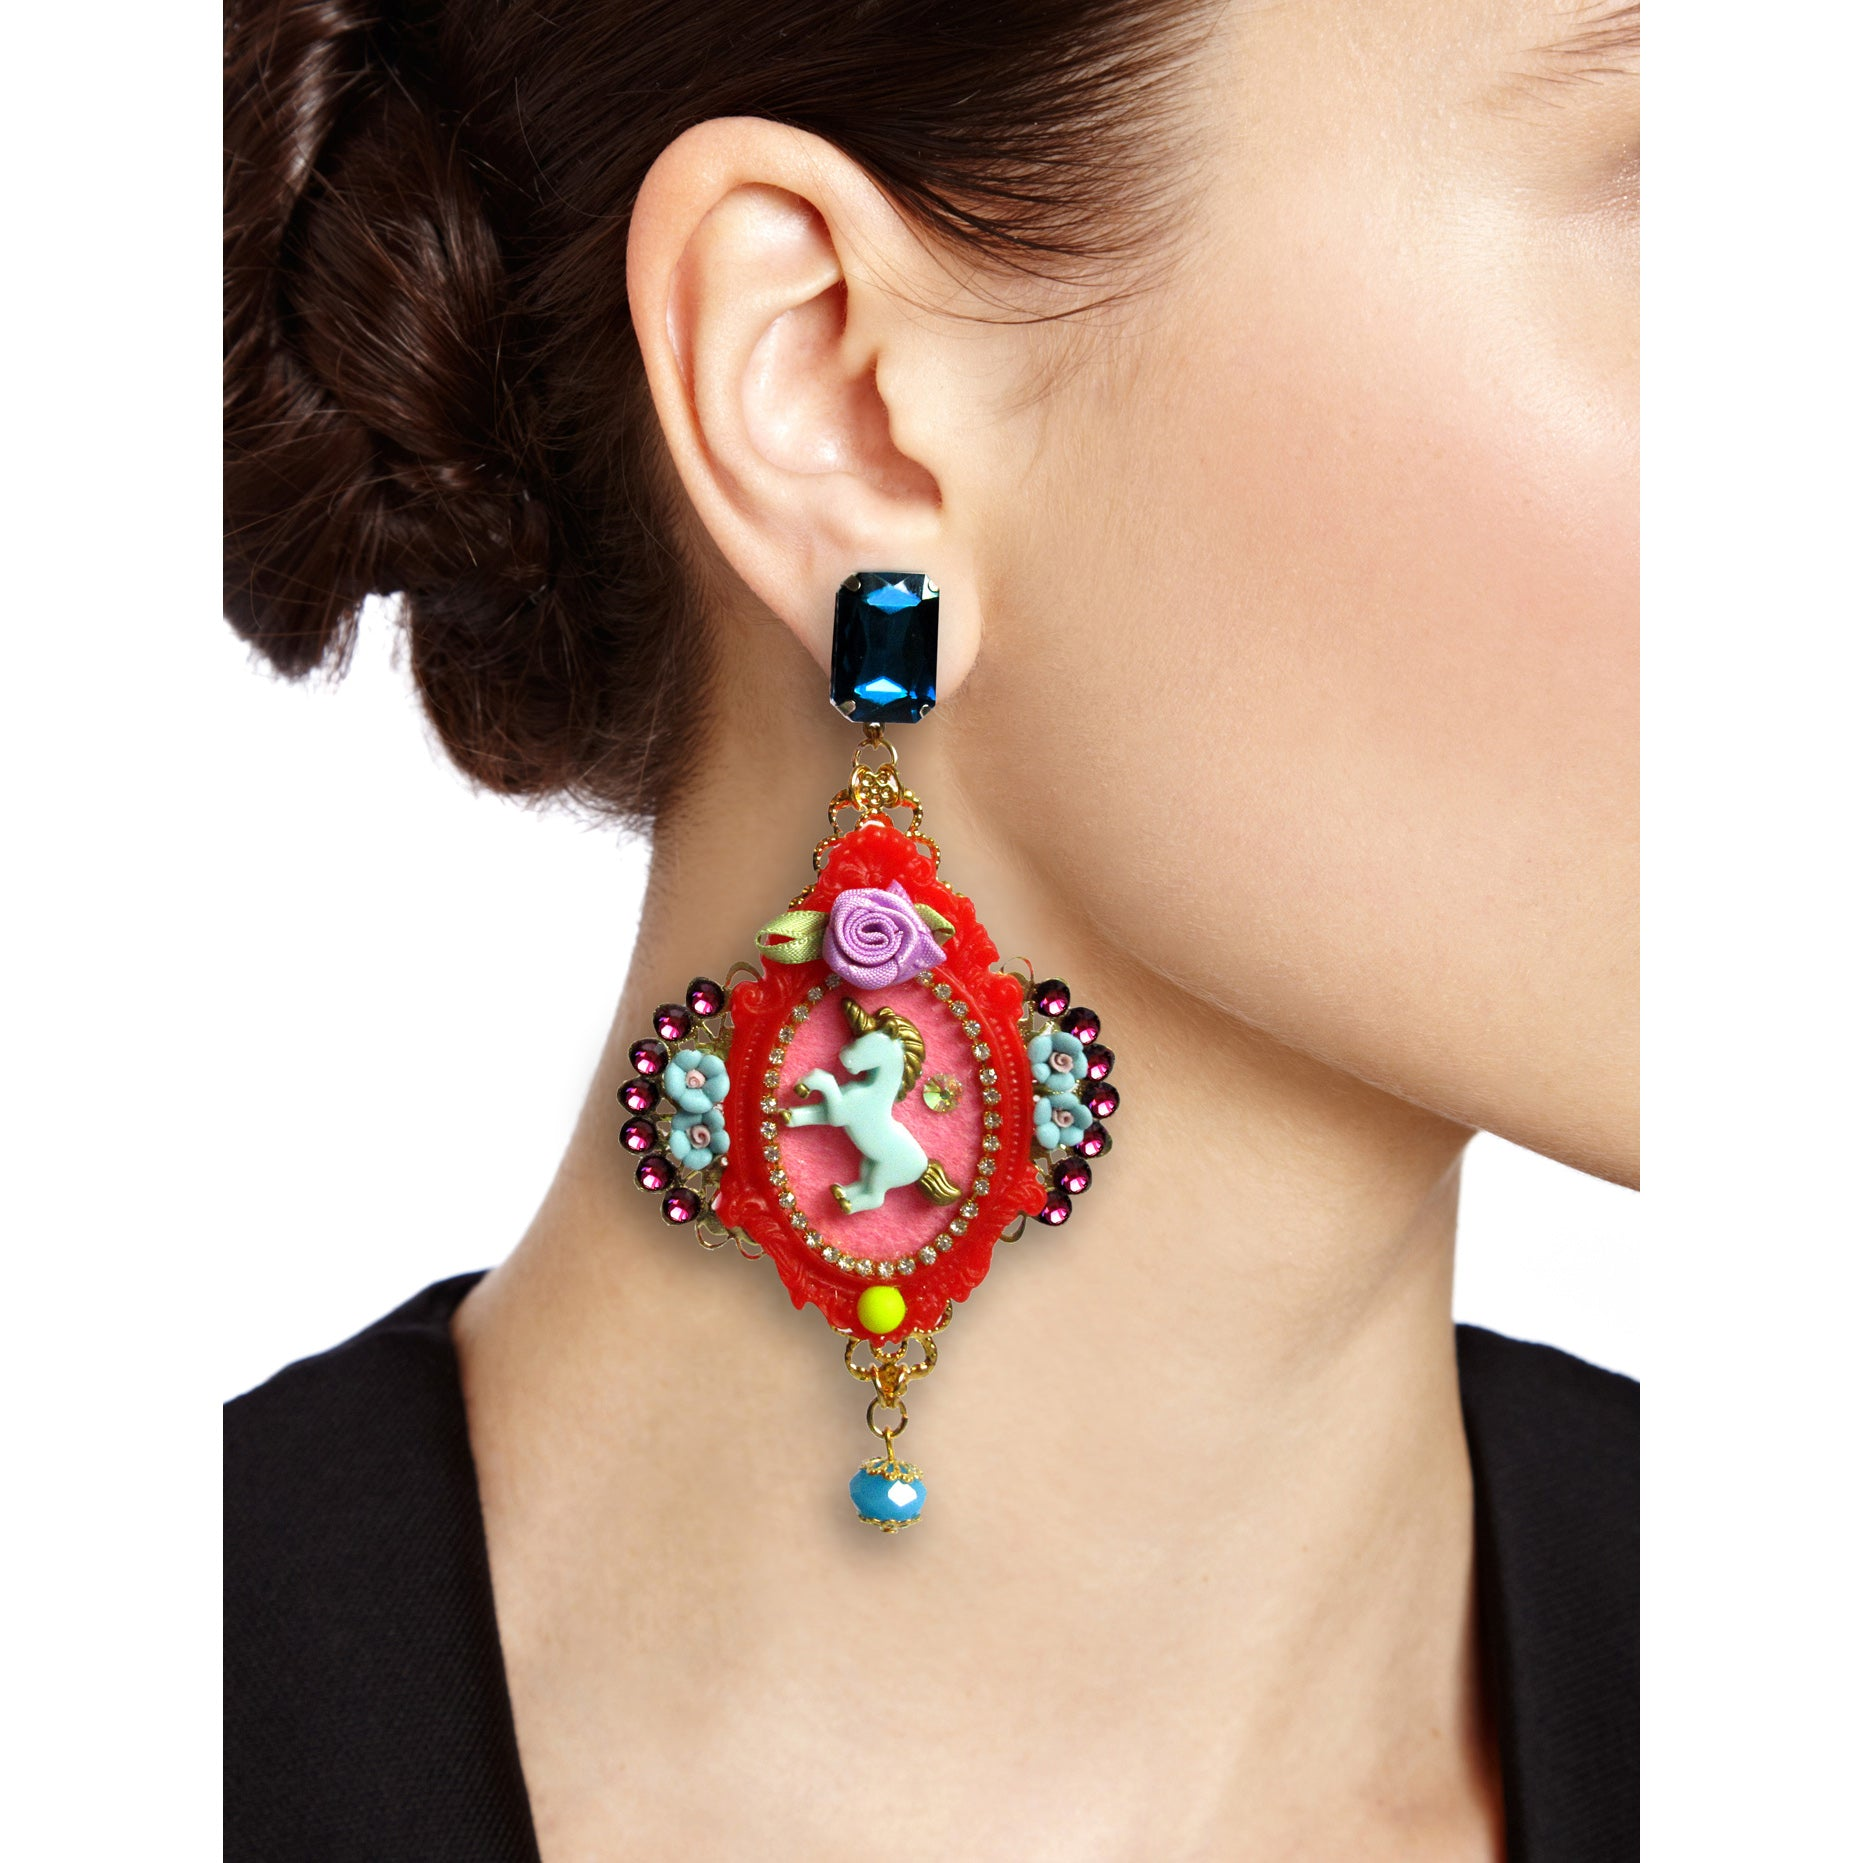 mouchkine jewelry incredible unicorn earrings, a haute couture jewel for a chic & elegant style